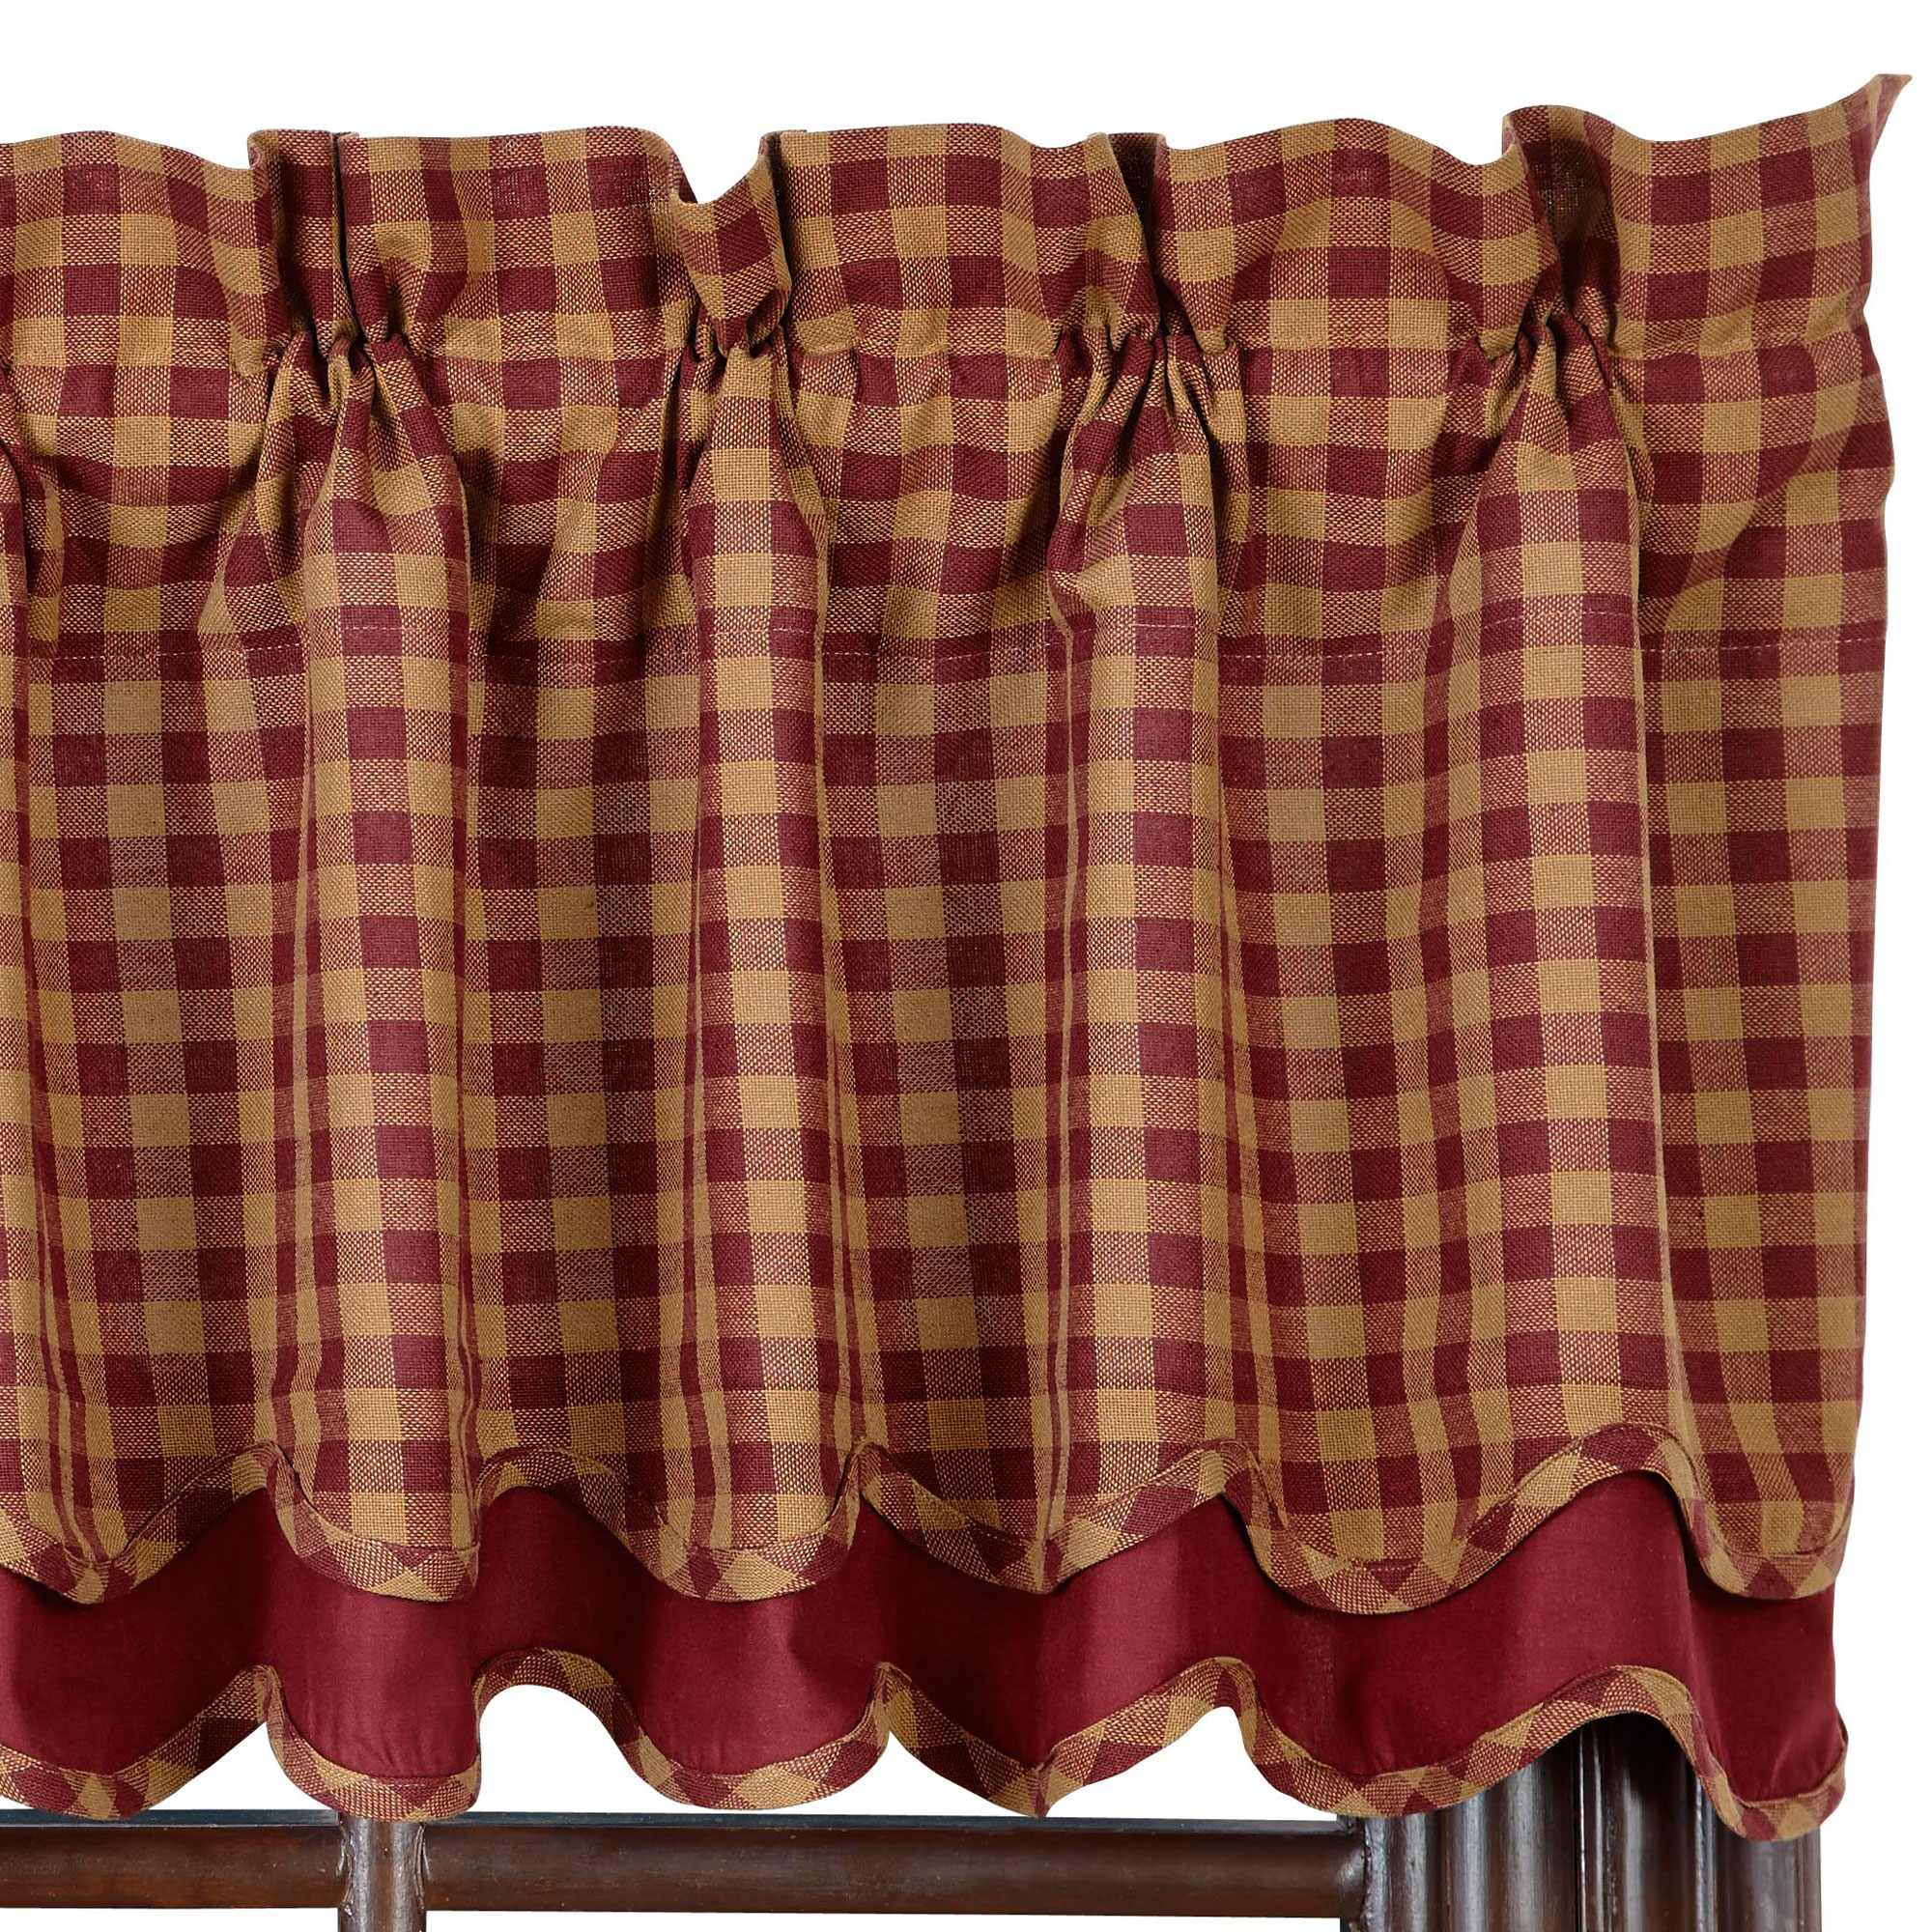 Check Scalloped Lined Layered Valance Burgundy And Tan Or